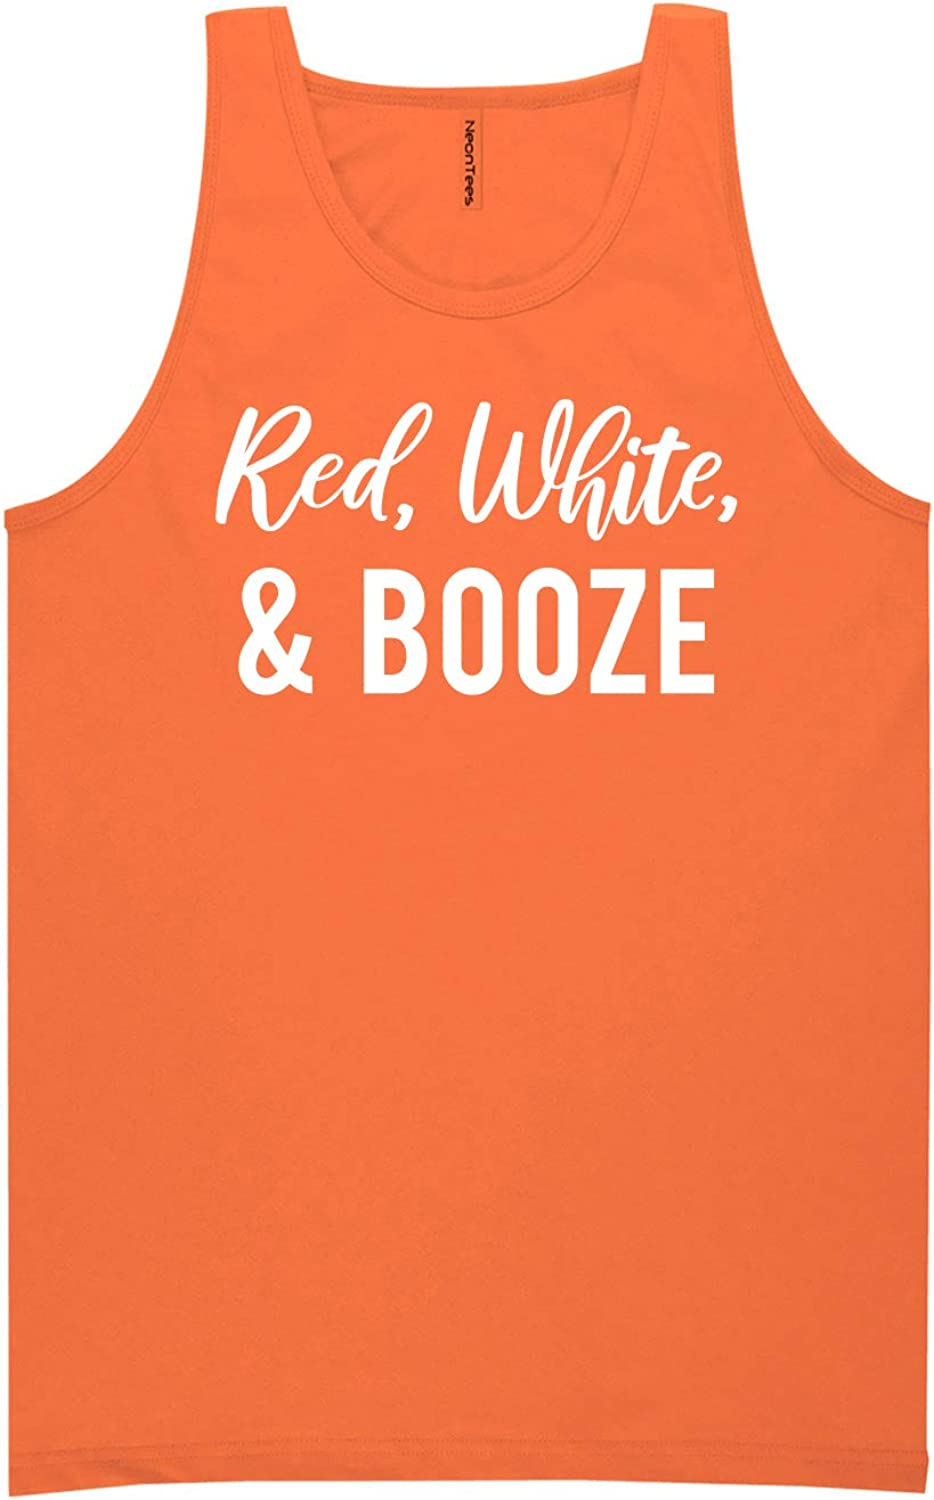 Red, White & Booze Neon Tank Top